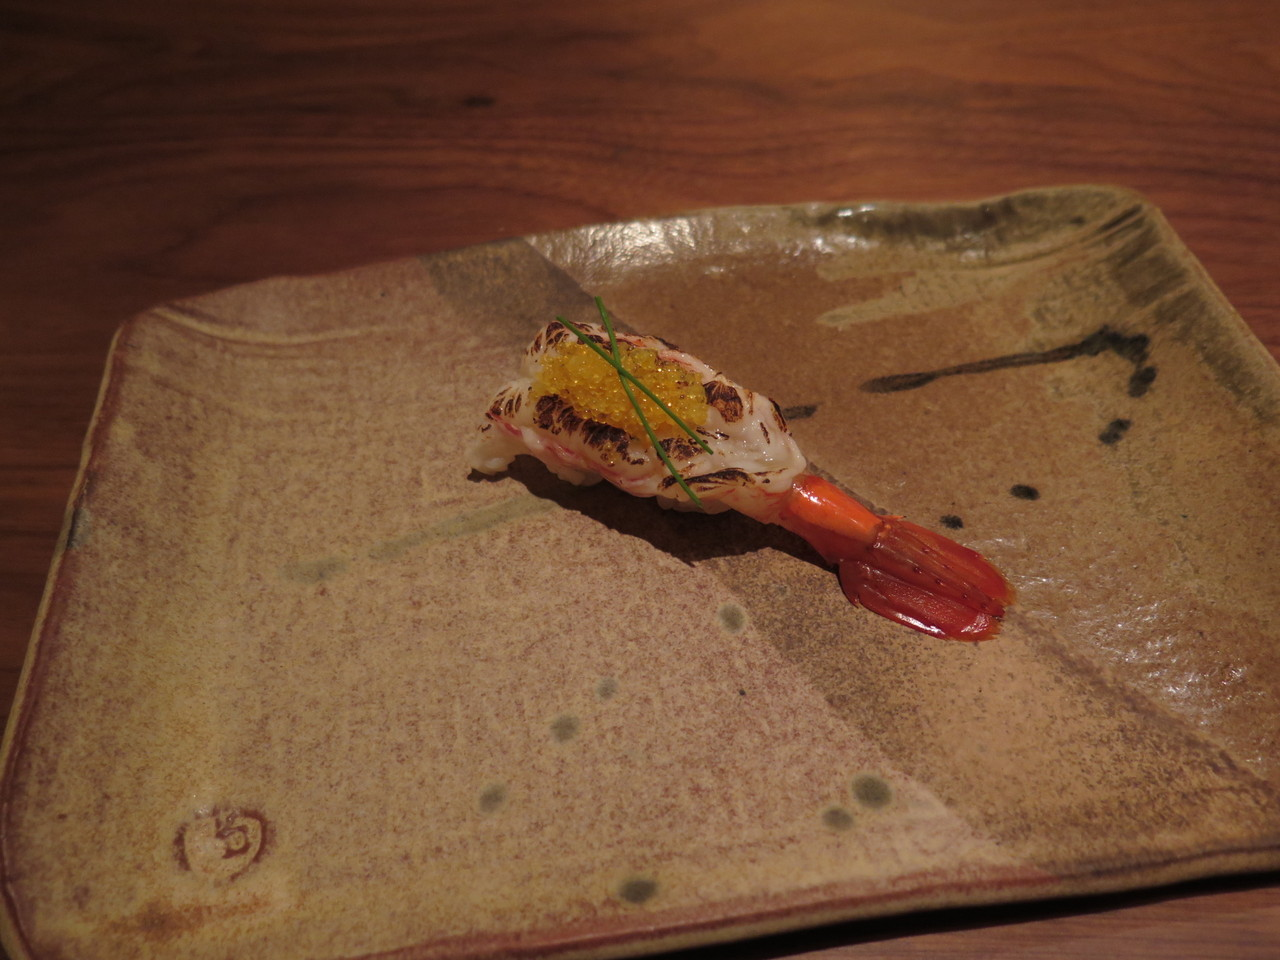 WILD SPOT PRAWN garlic butter, yuzu tobiko, preserved meyer lemon